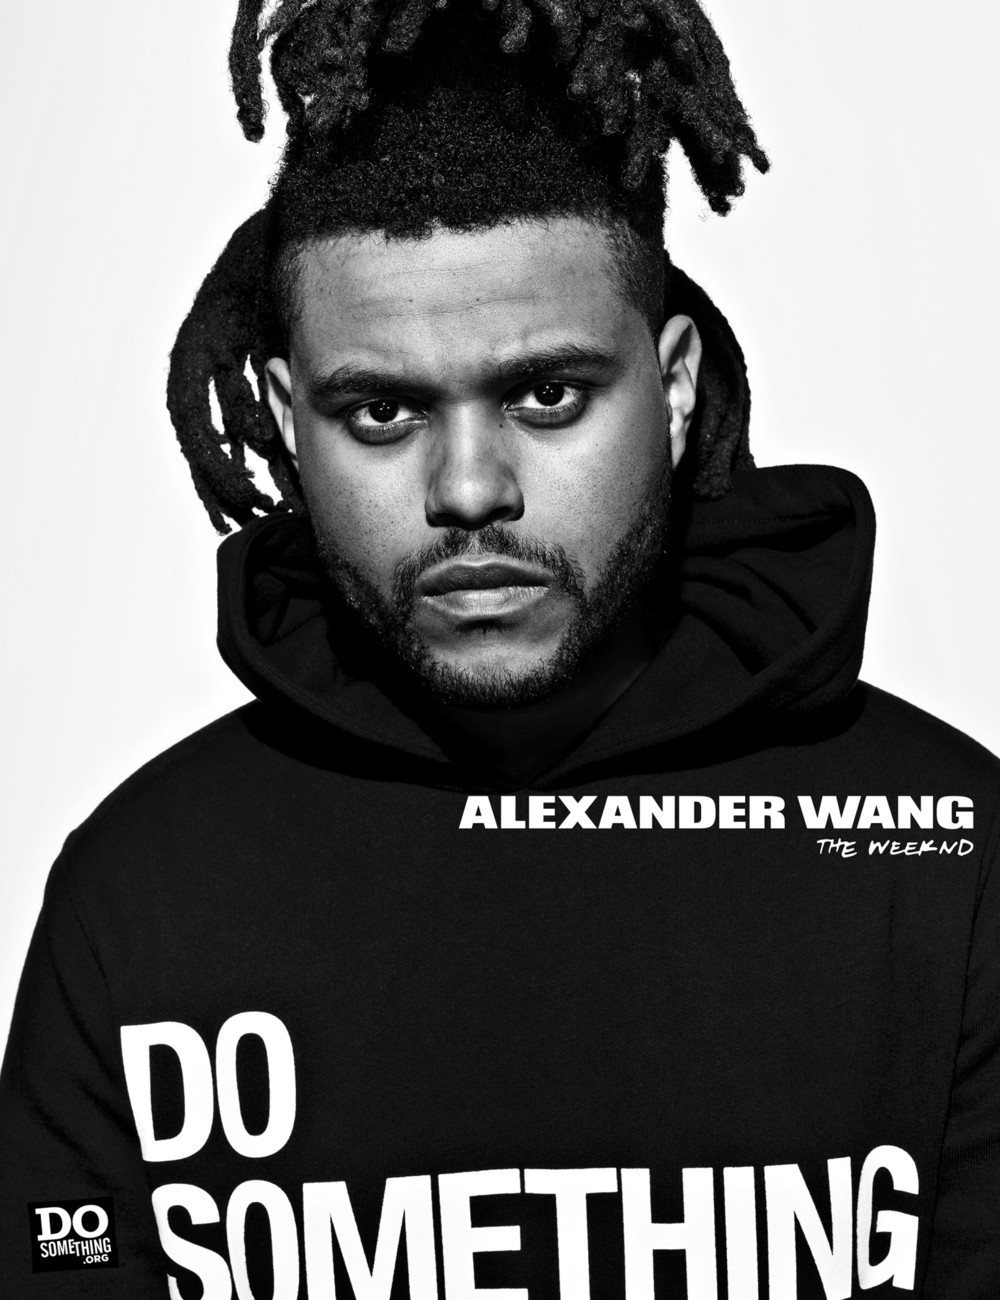 1-THE-WEEKND-AW-X-DOSOMETHING-1542x2004.jpg